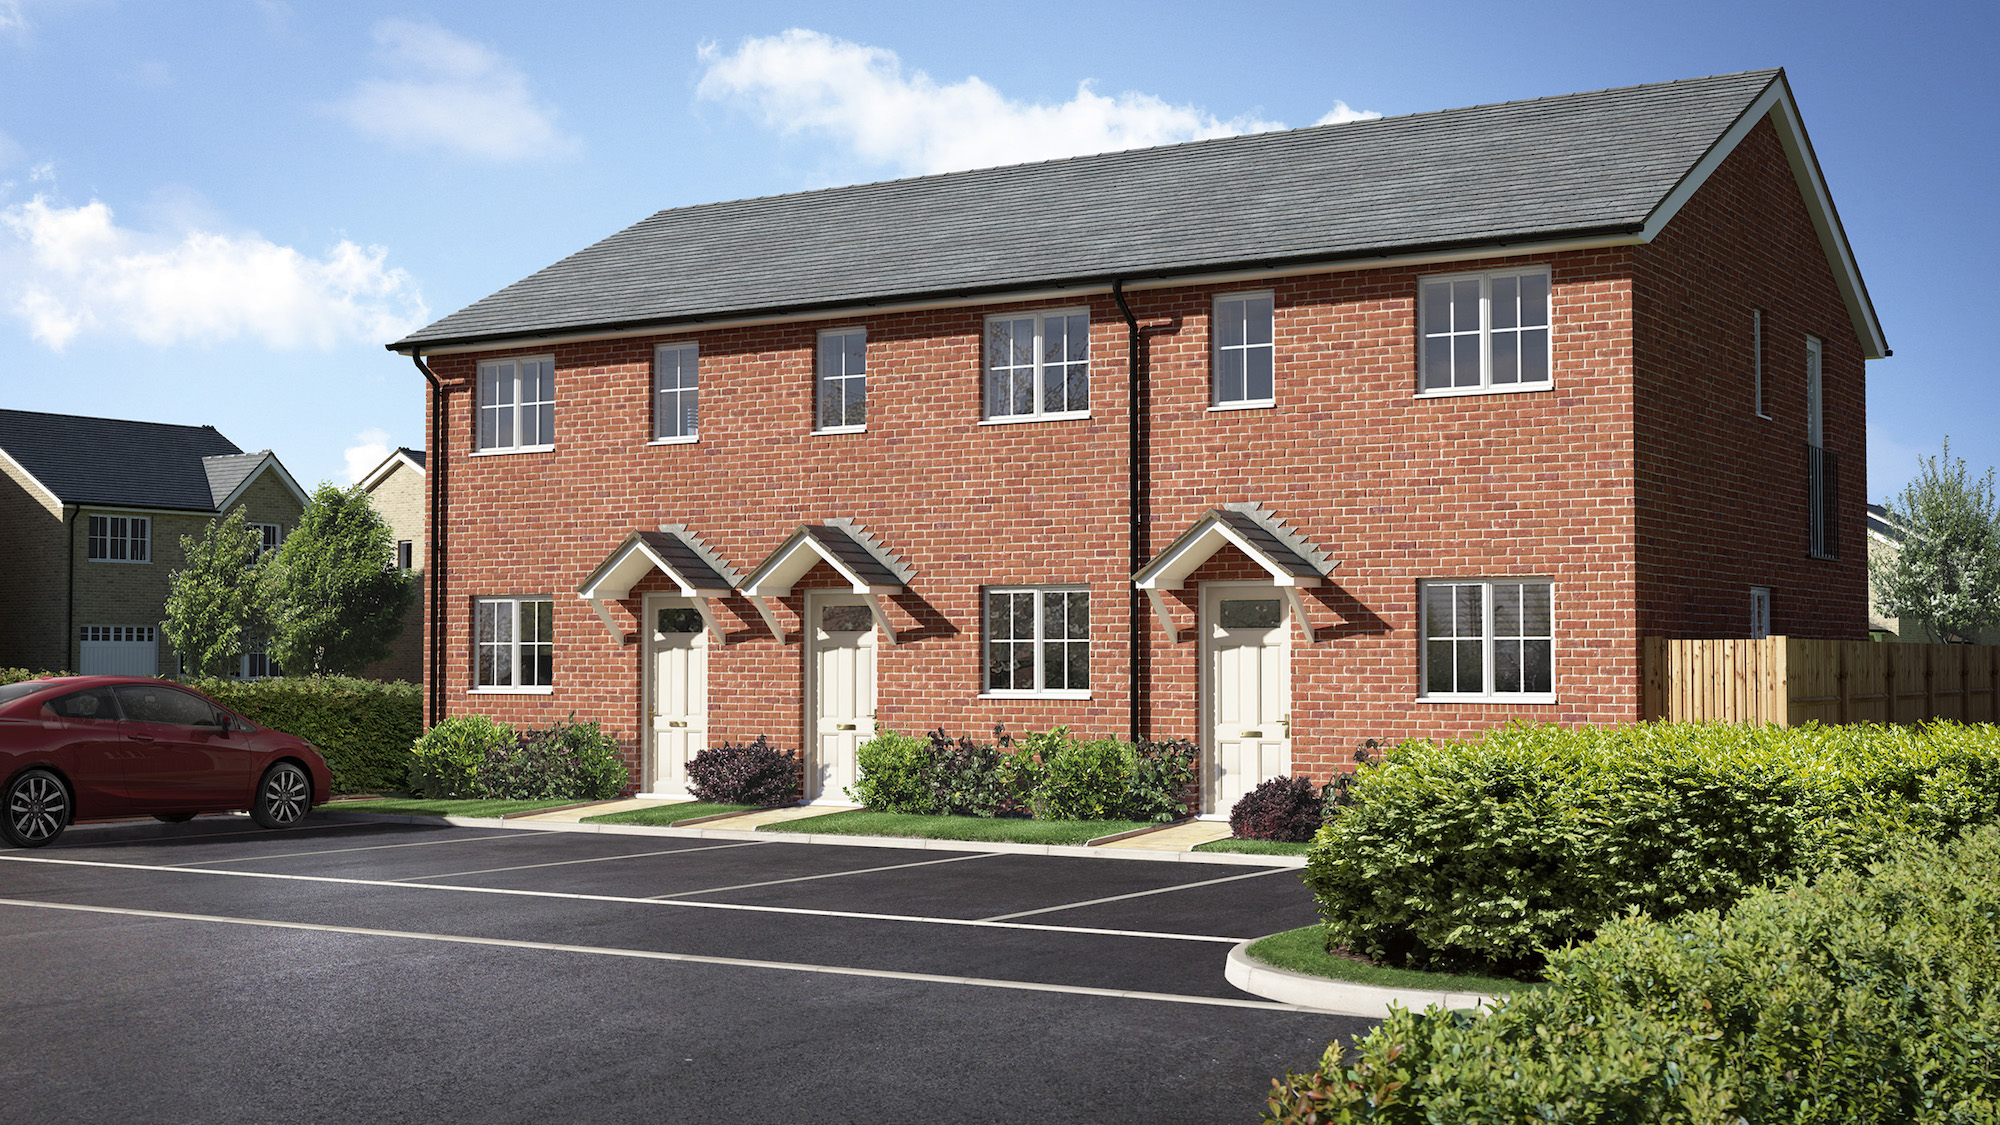 Rare chance to buy a quality new home for £82,200